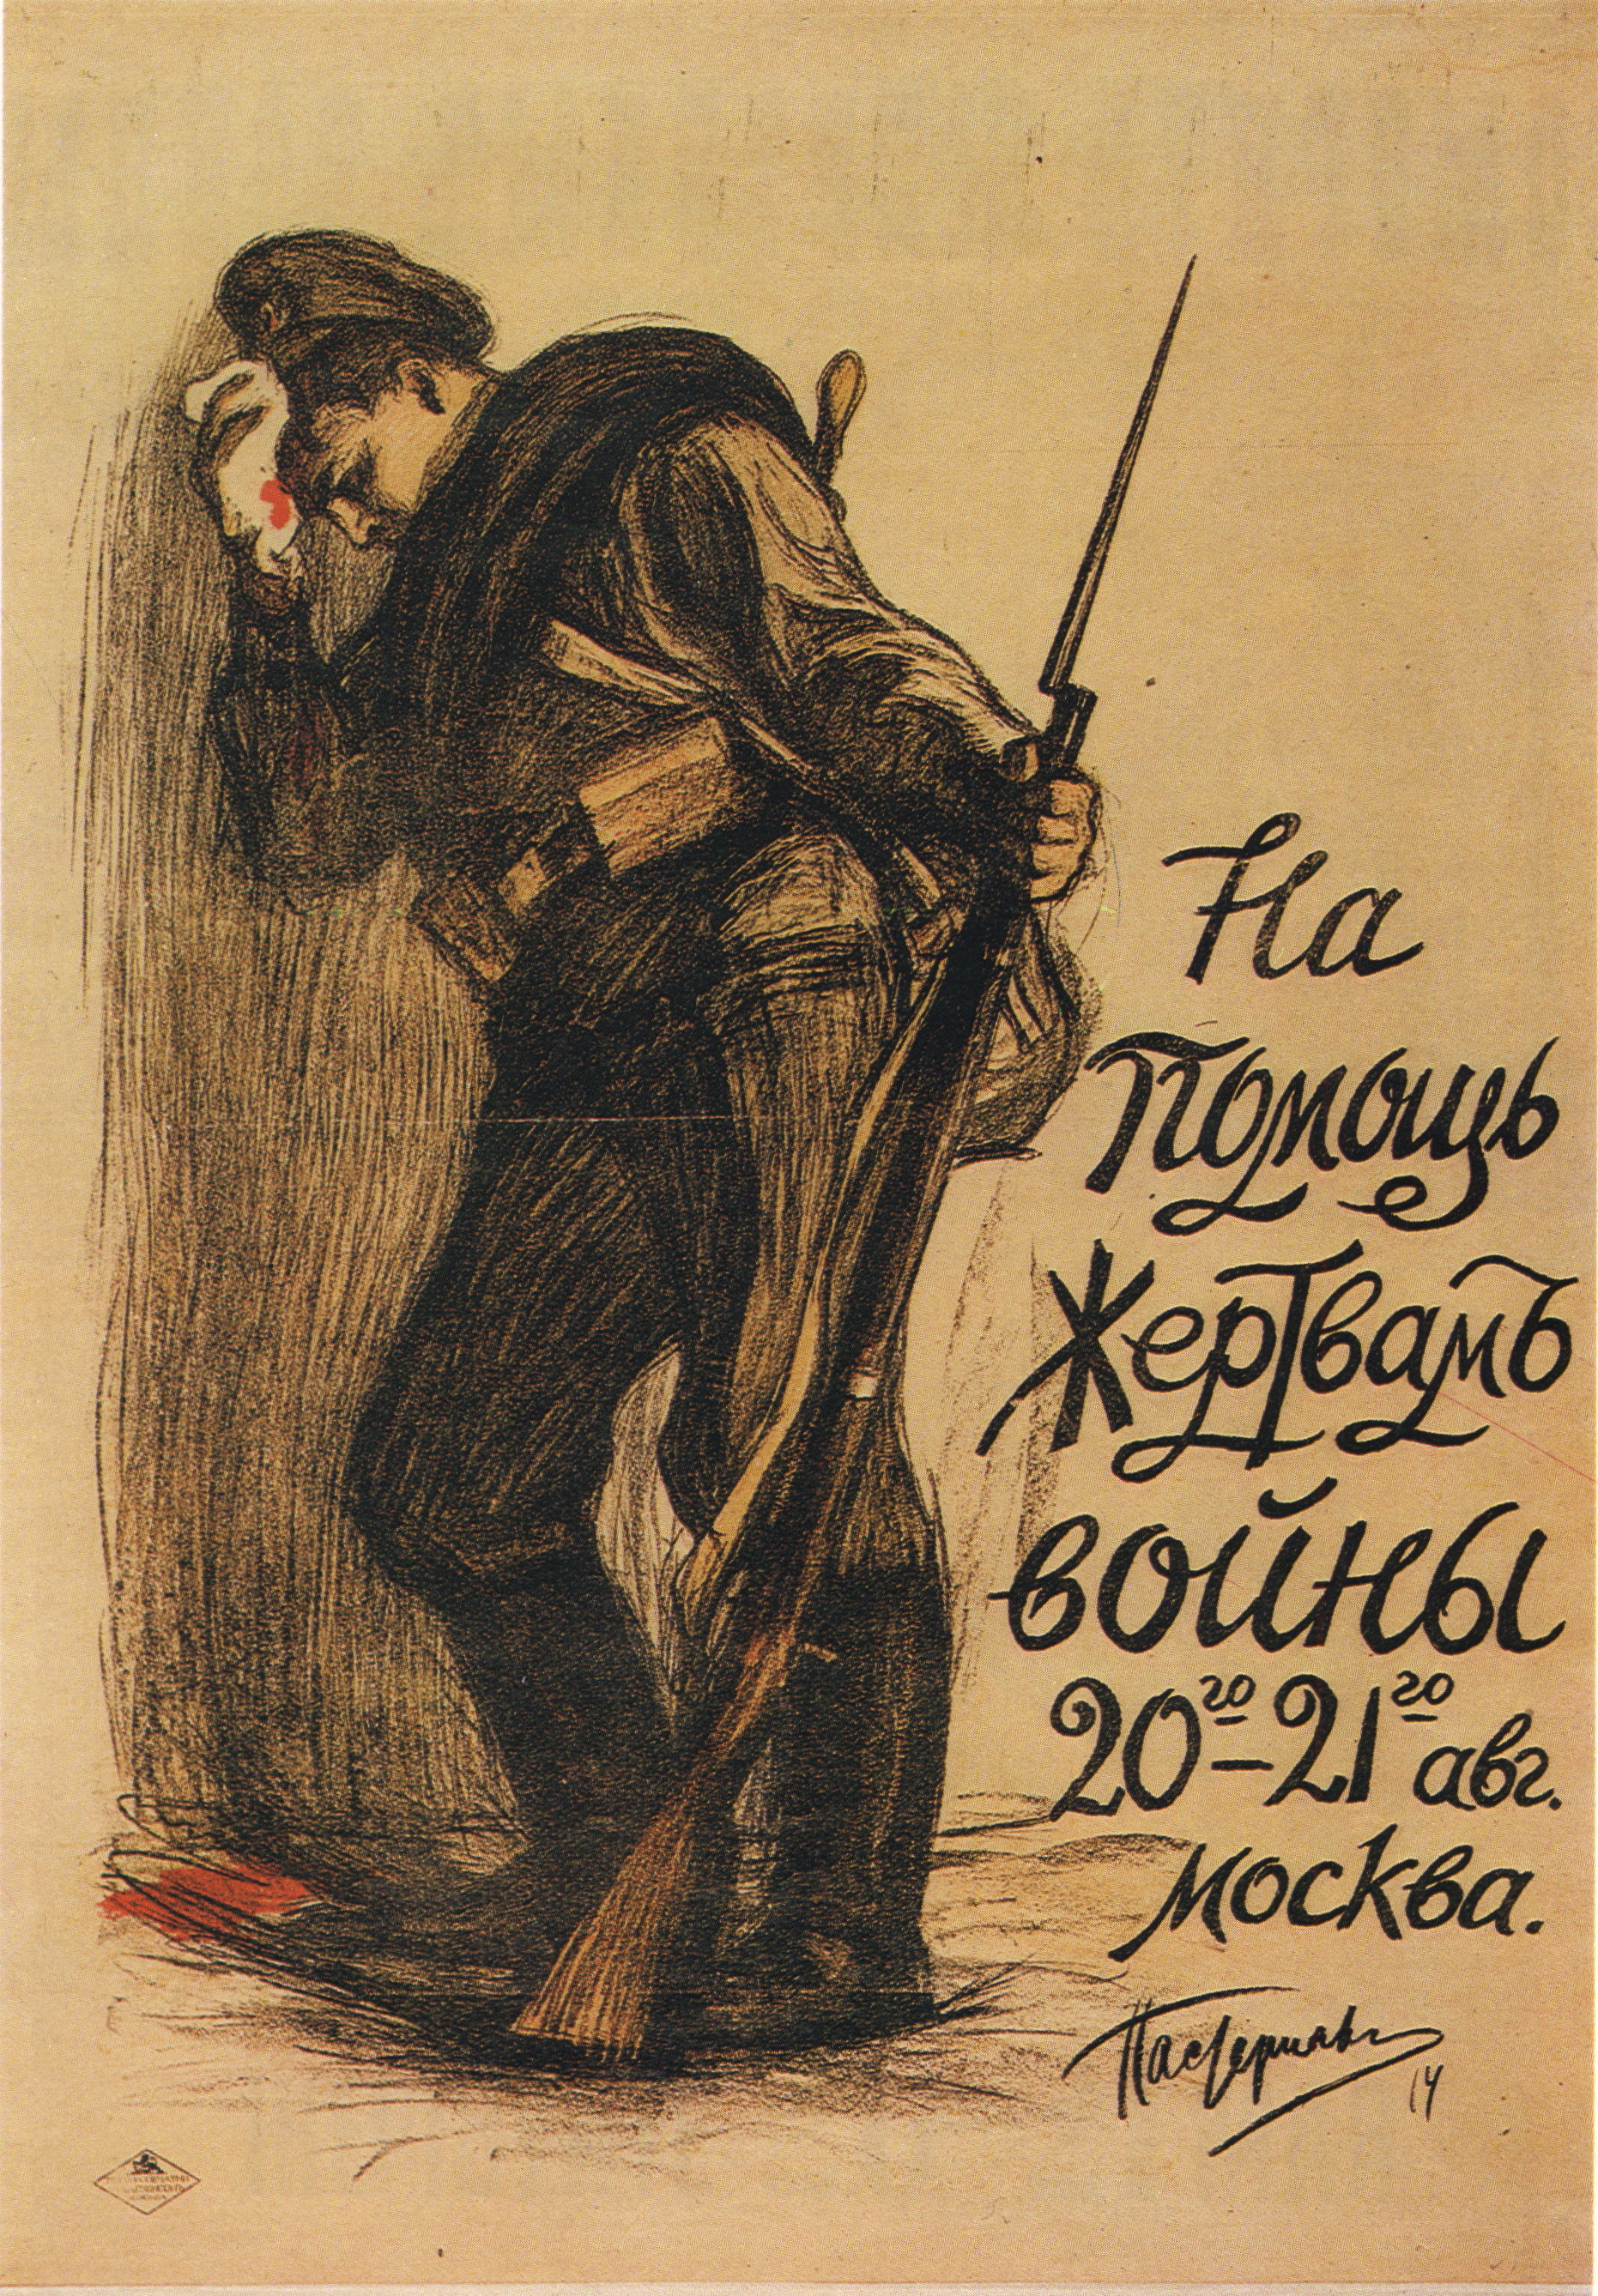 "<p>Russian war propaganda. By Leonid O. Pasternak - <a href=""https://commons.wikimedia.org/wiki/File:Russian_poster_WWI_002.jpg"">Бабурина Н. И. Русский плакат первой мировой войны.</a> М., 1992.</p>"